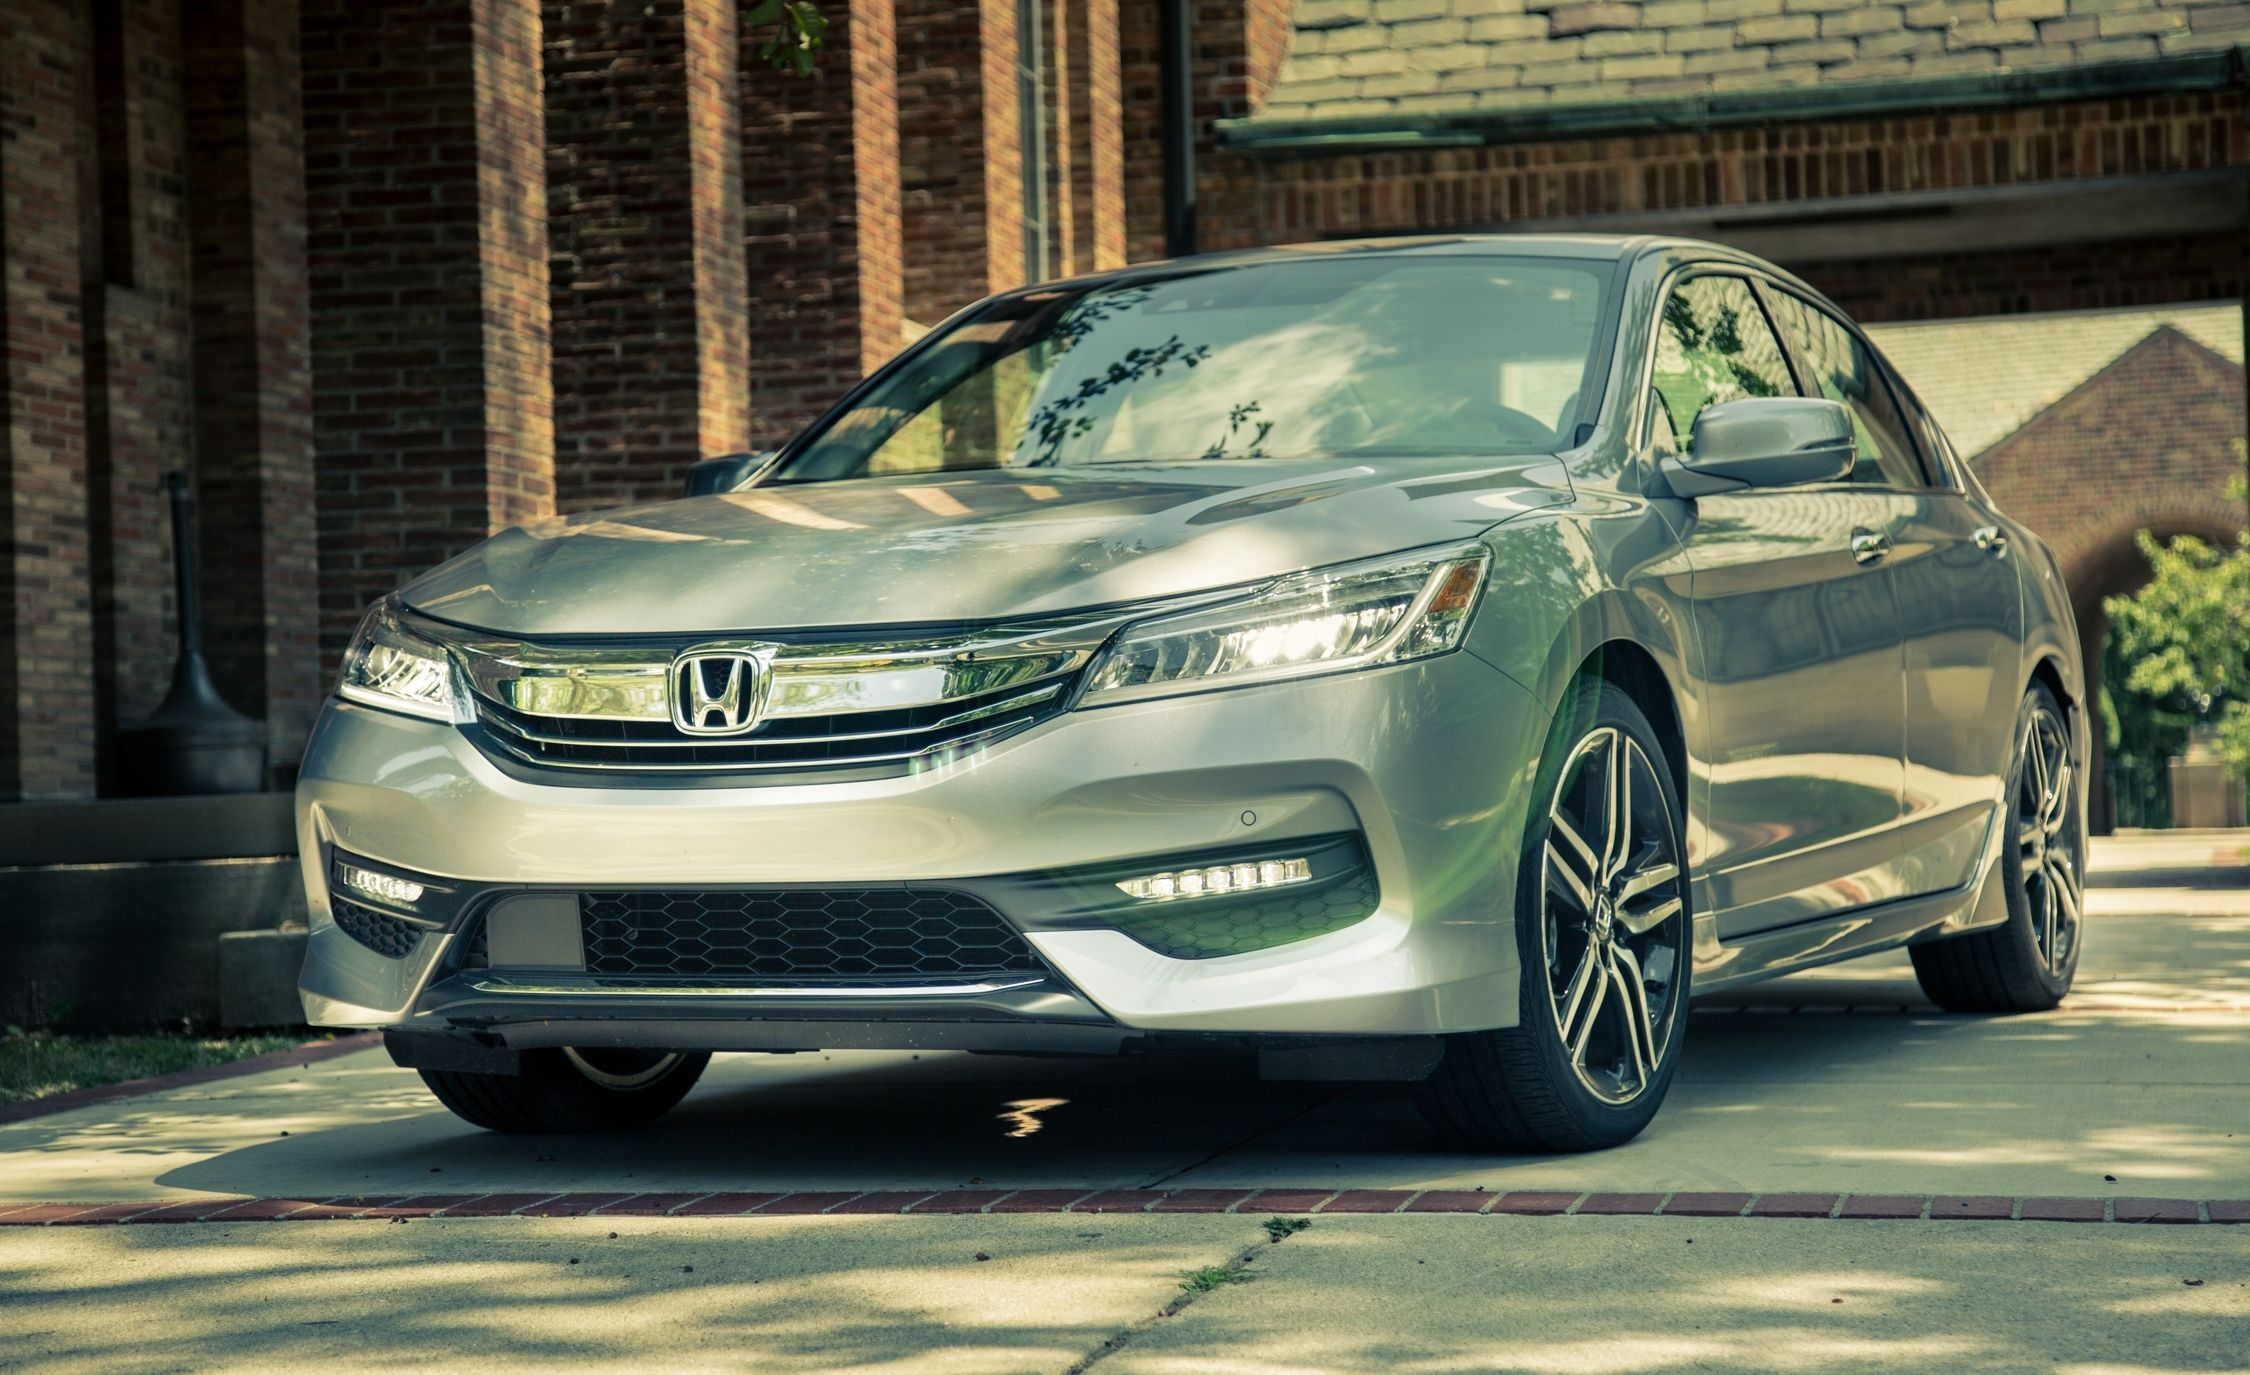 12 New-Car Lease Deals to Make Your Memorial Day Weekend - Slide 4